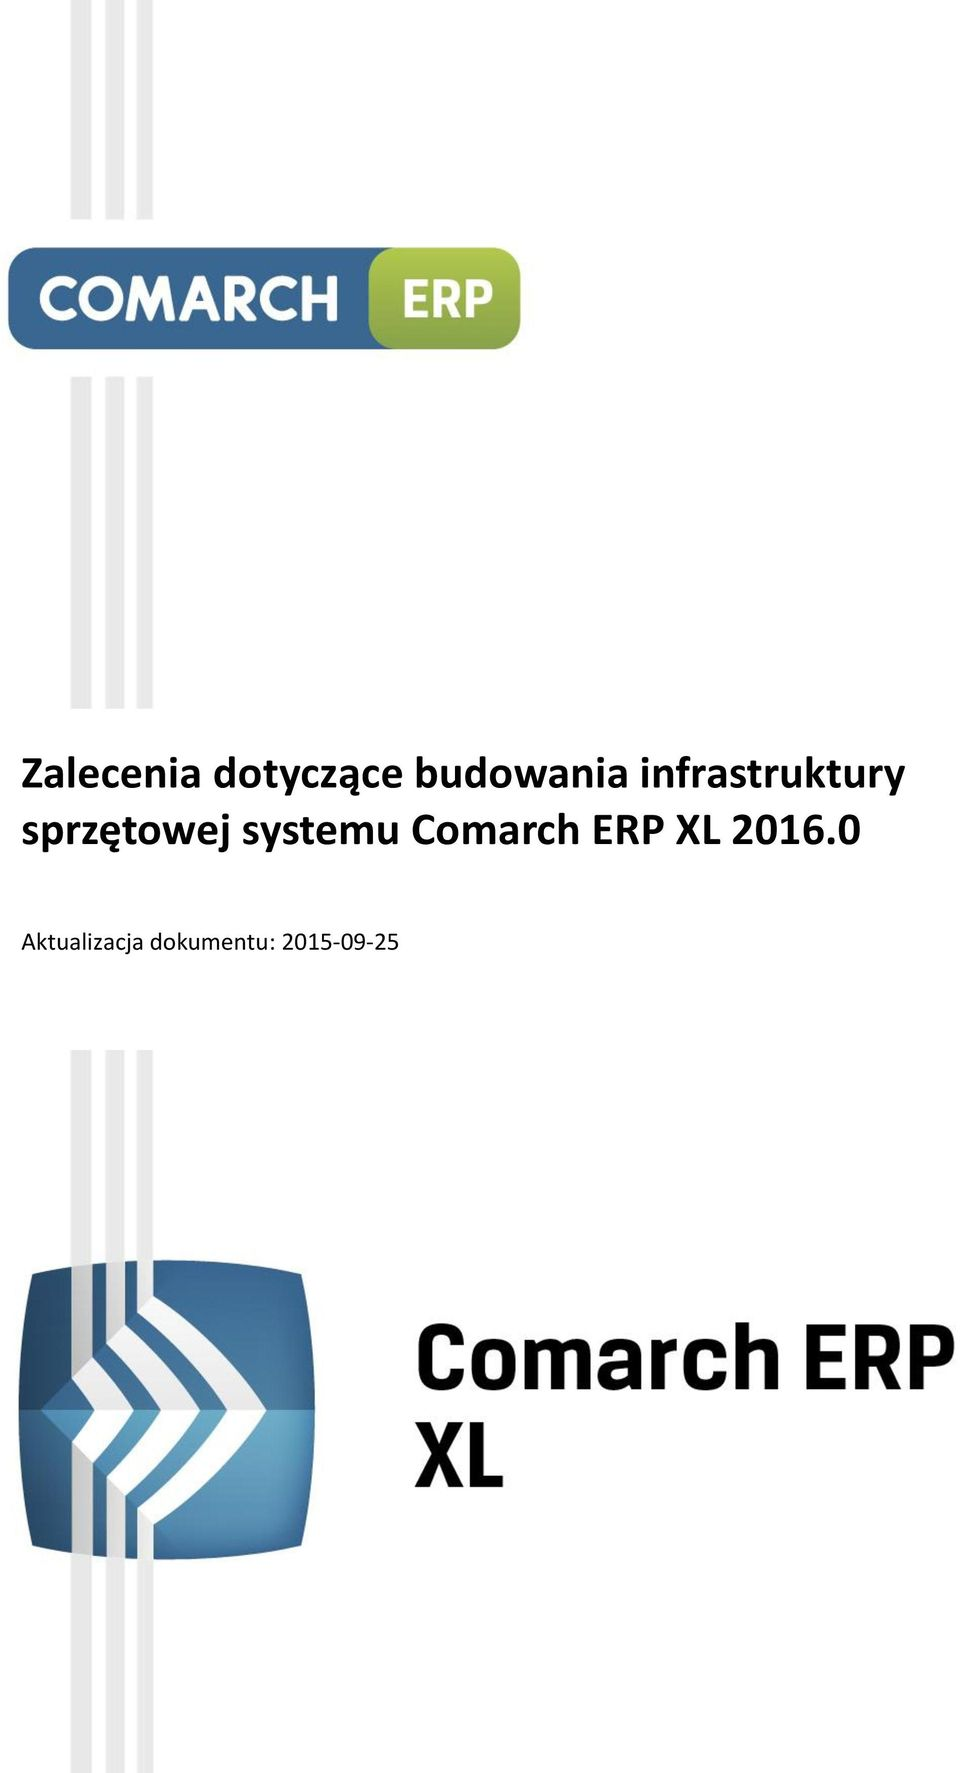 systemu Comarch ERP XL 2016.